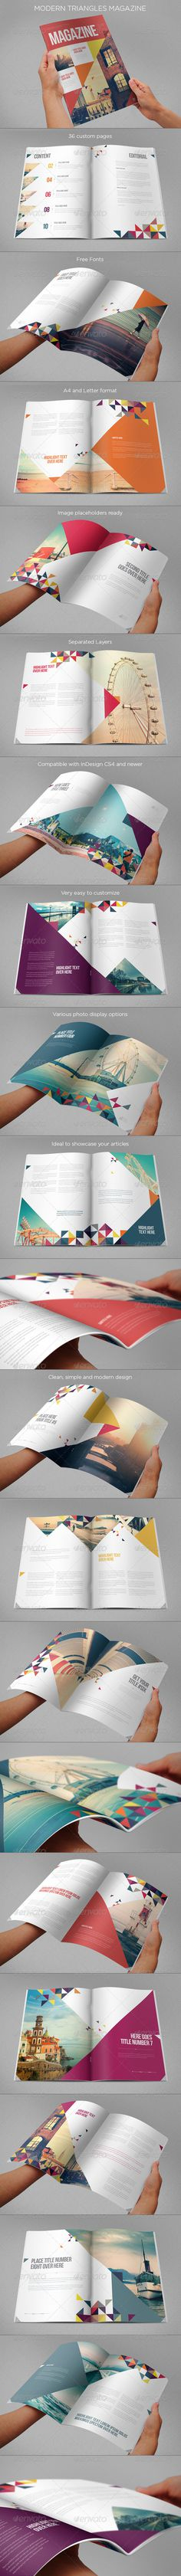 Modern Triangles Magazine - Magazines Print Templates #layout #magazine